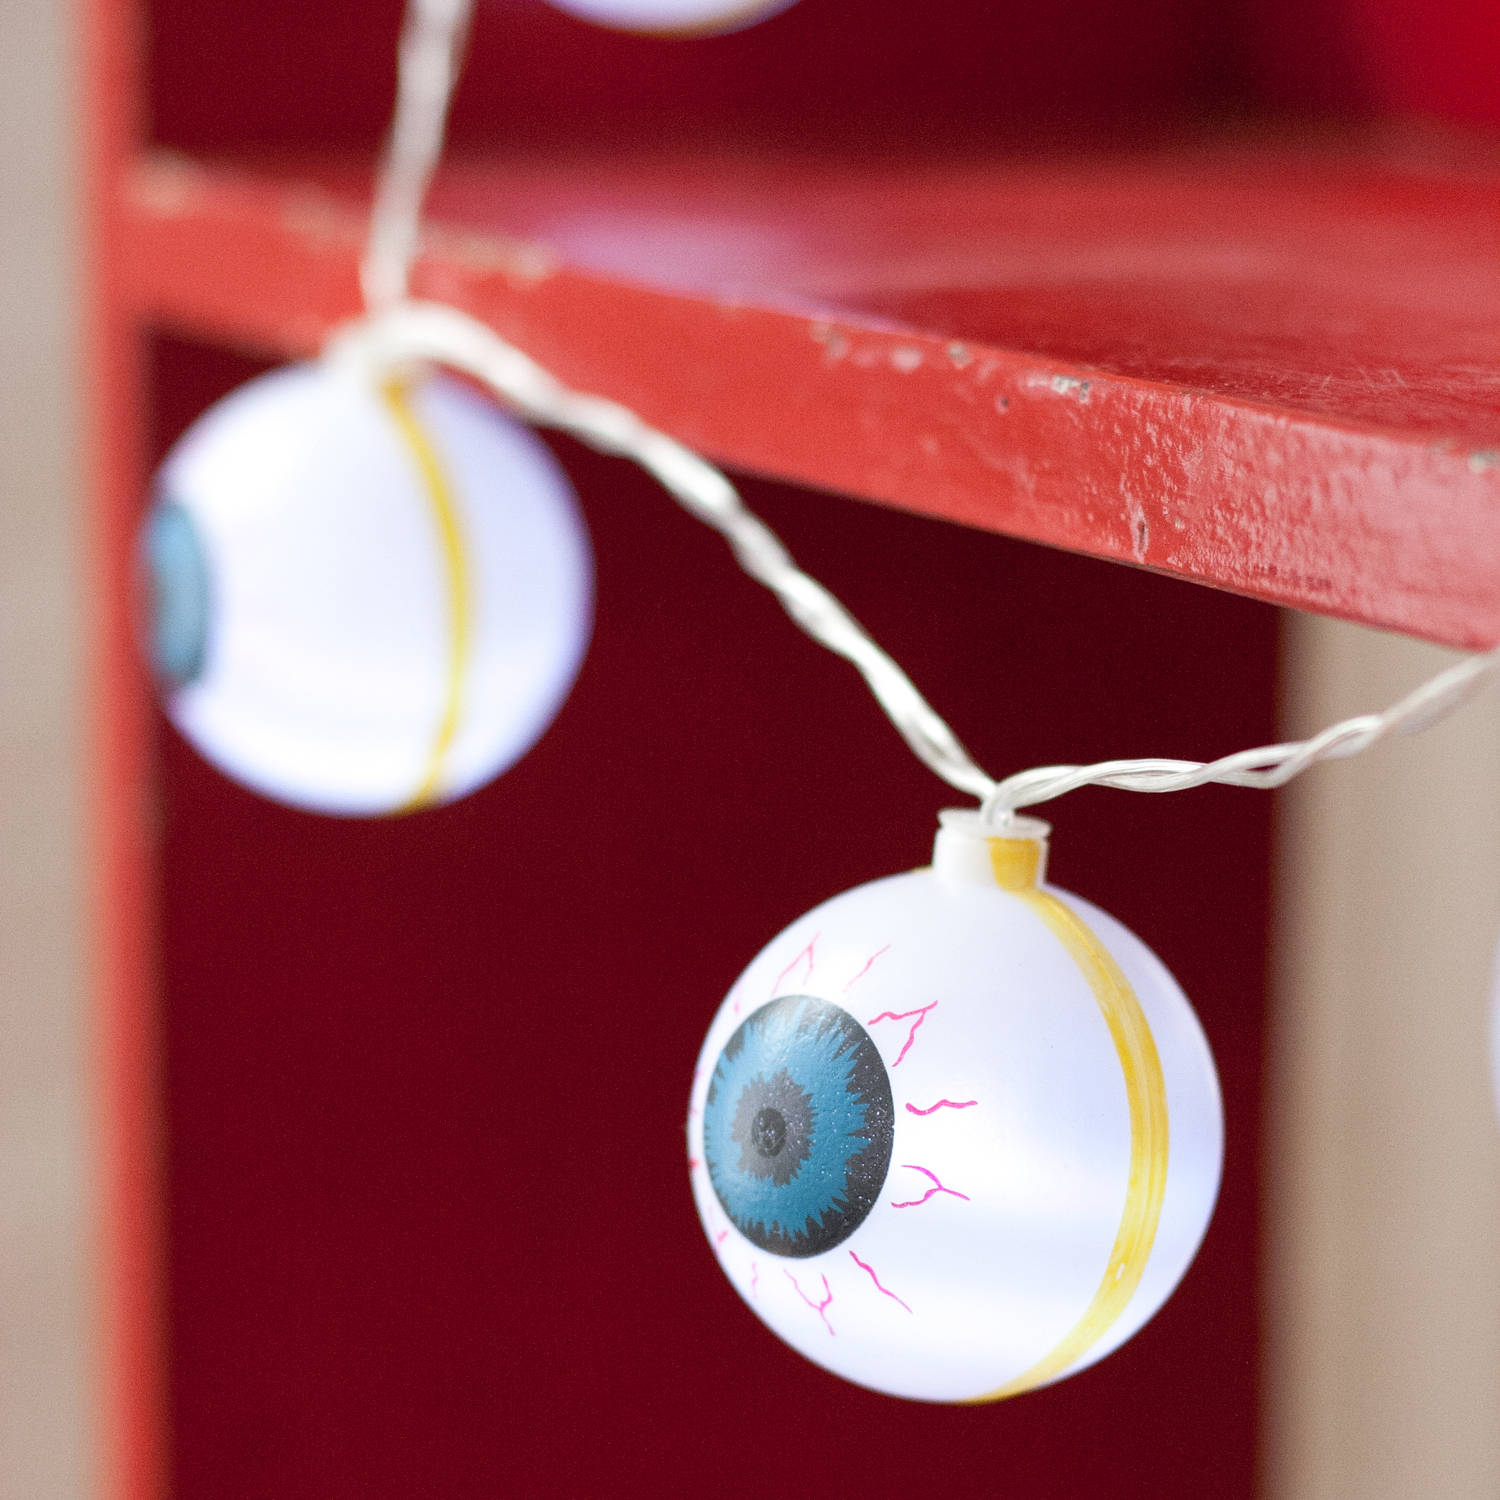 Lights.com Lit Decor Seasonal Halloween Eyeball 10 LED Battery Operated String Lights, Set ...